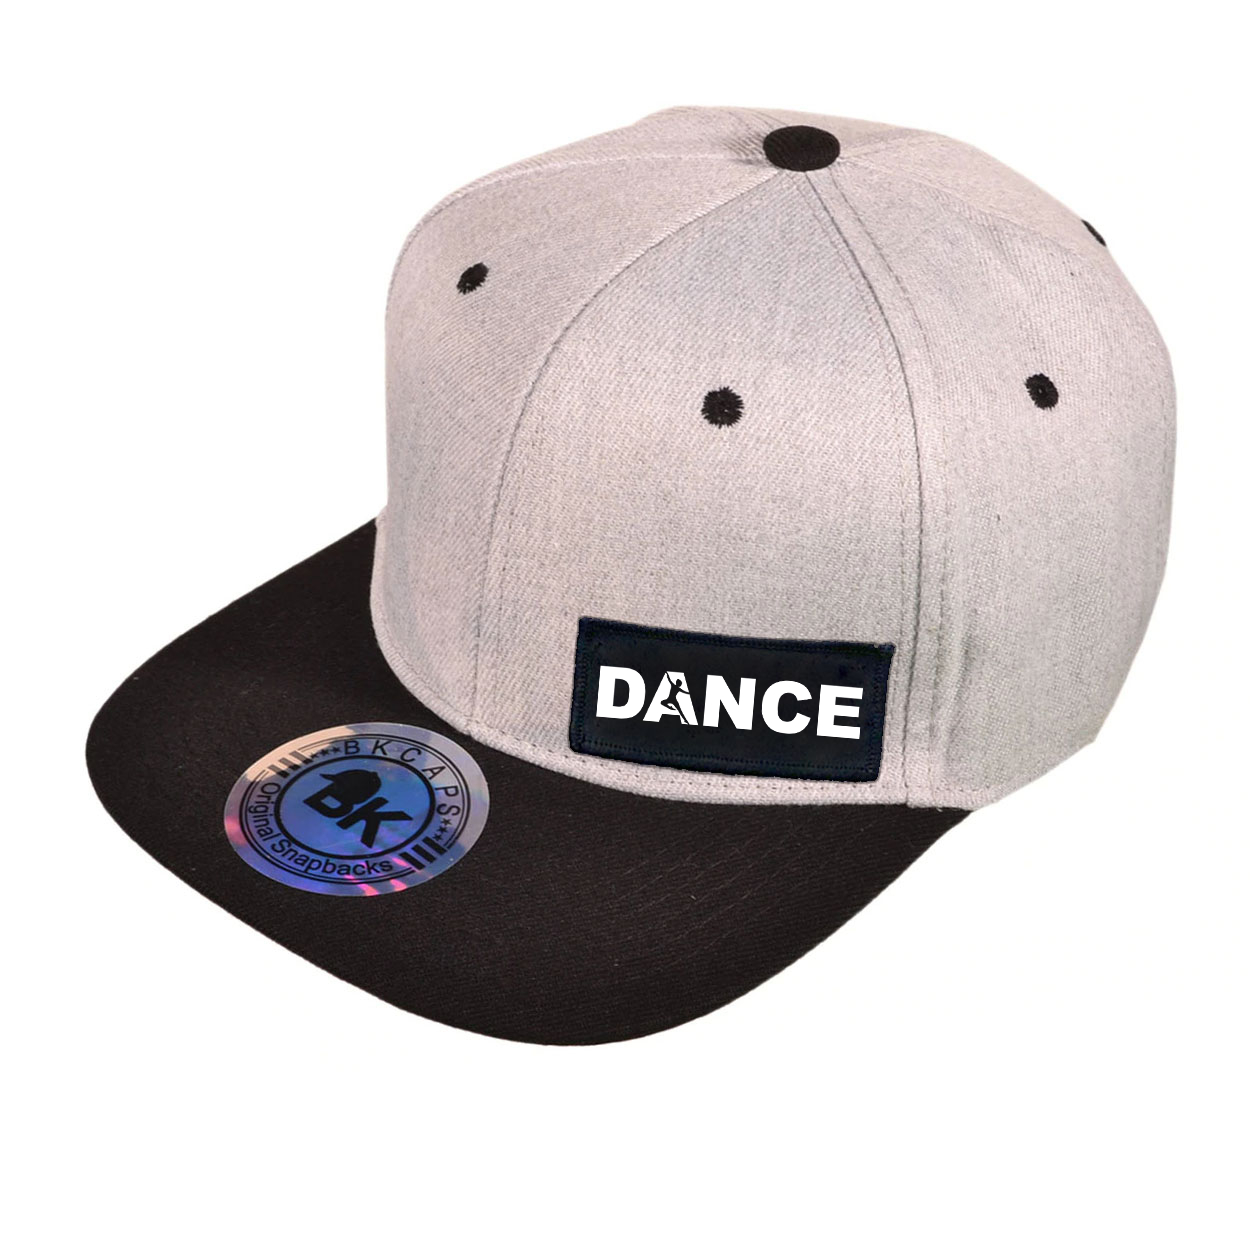 Dance Silhouette Logo Night Out Woven Patch Snapback Flat Brim Hat Heather Gray/Black (White Logo)